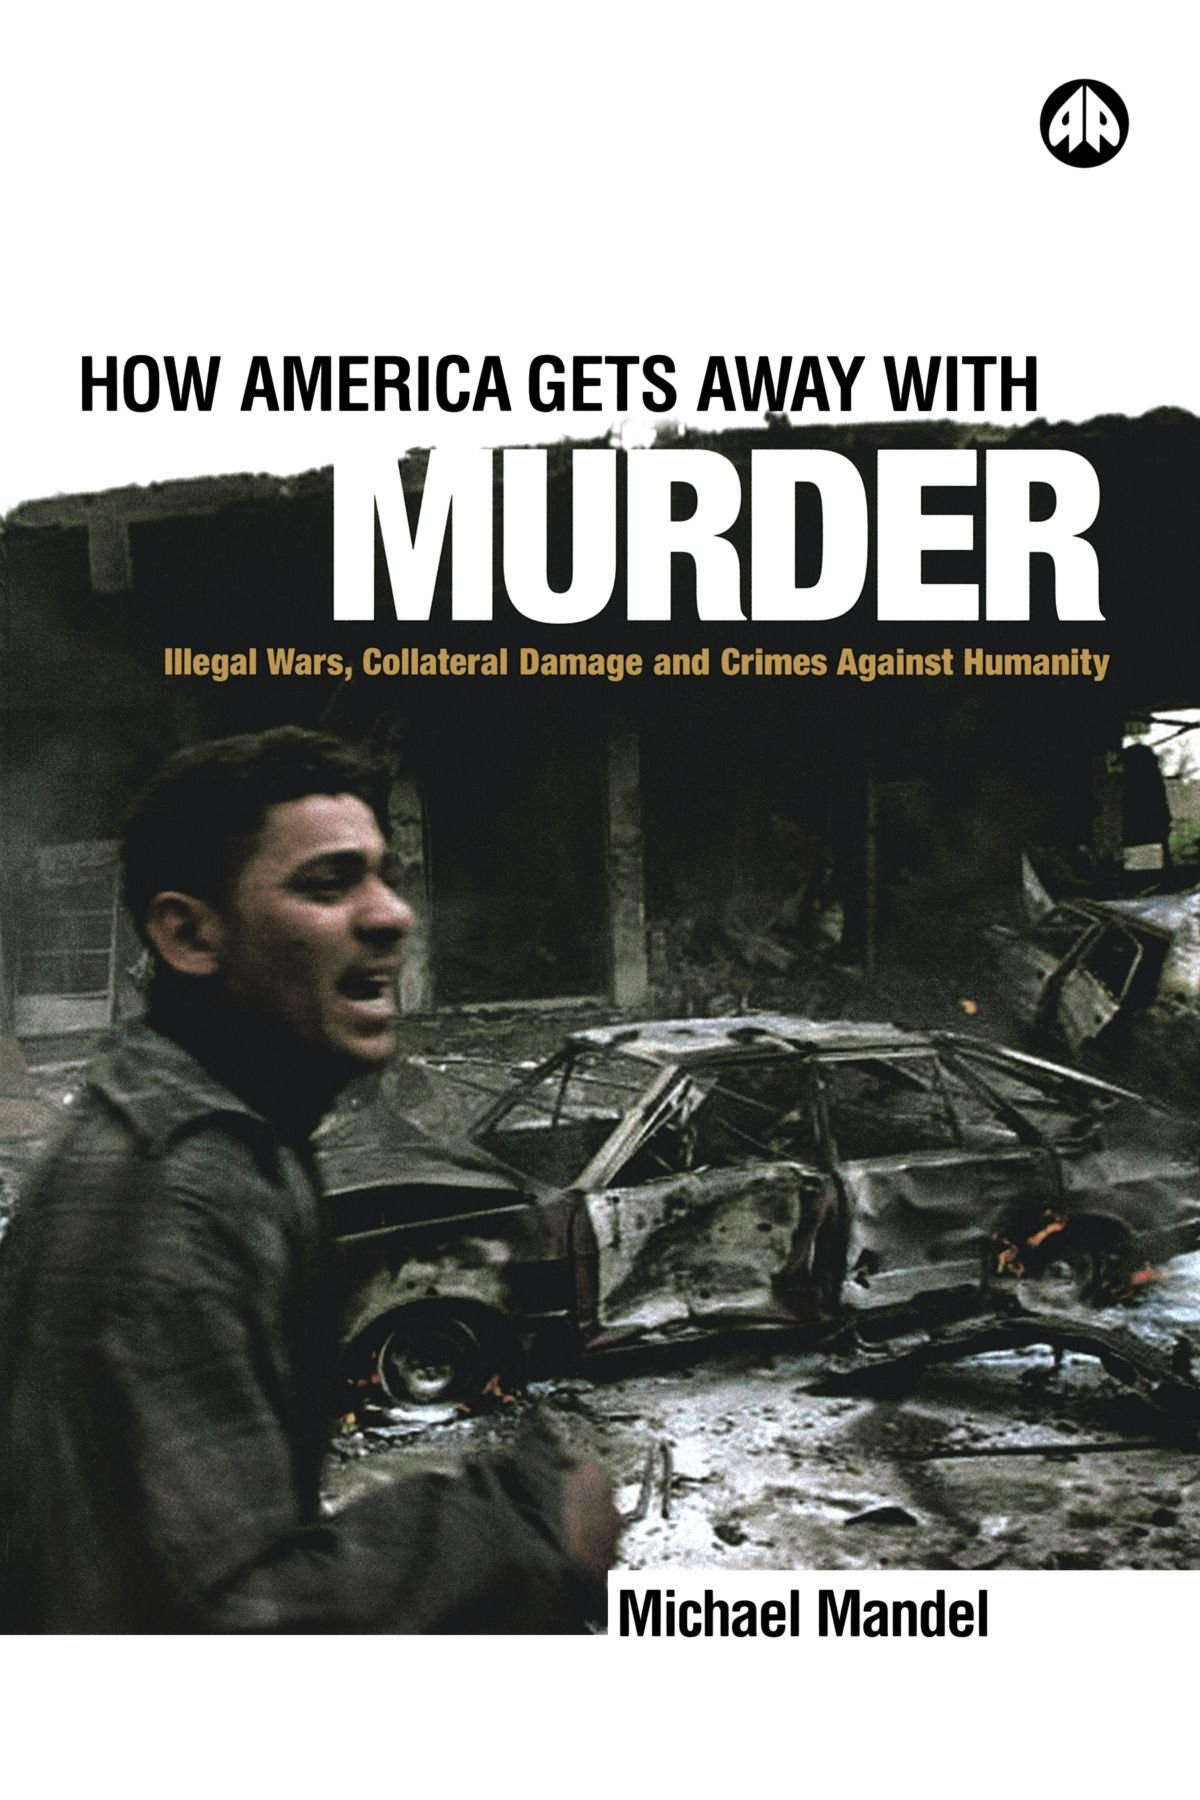 Download How America Gets Away with Murder: Illegal Wars, Collateral Damage and Crimes Against Humanity pdf